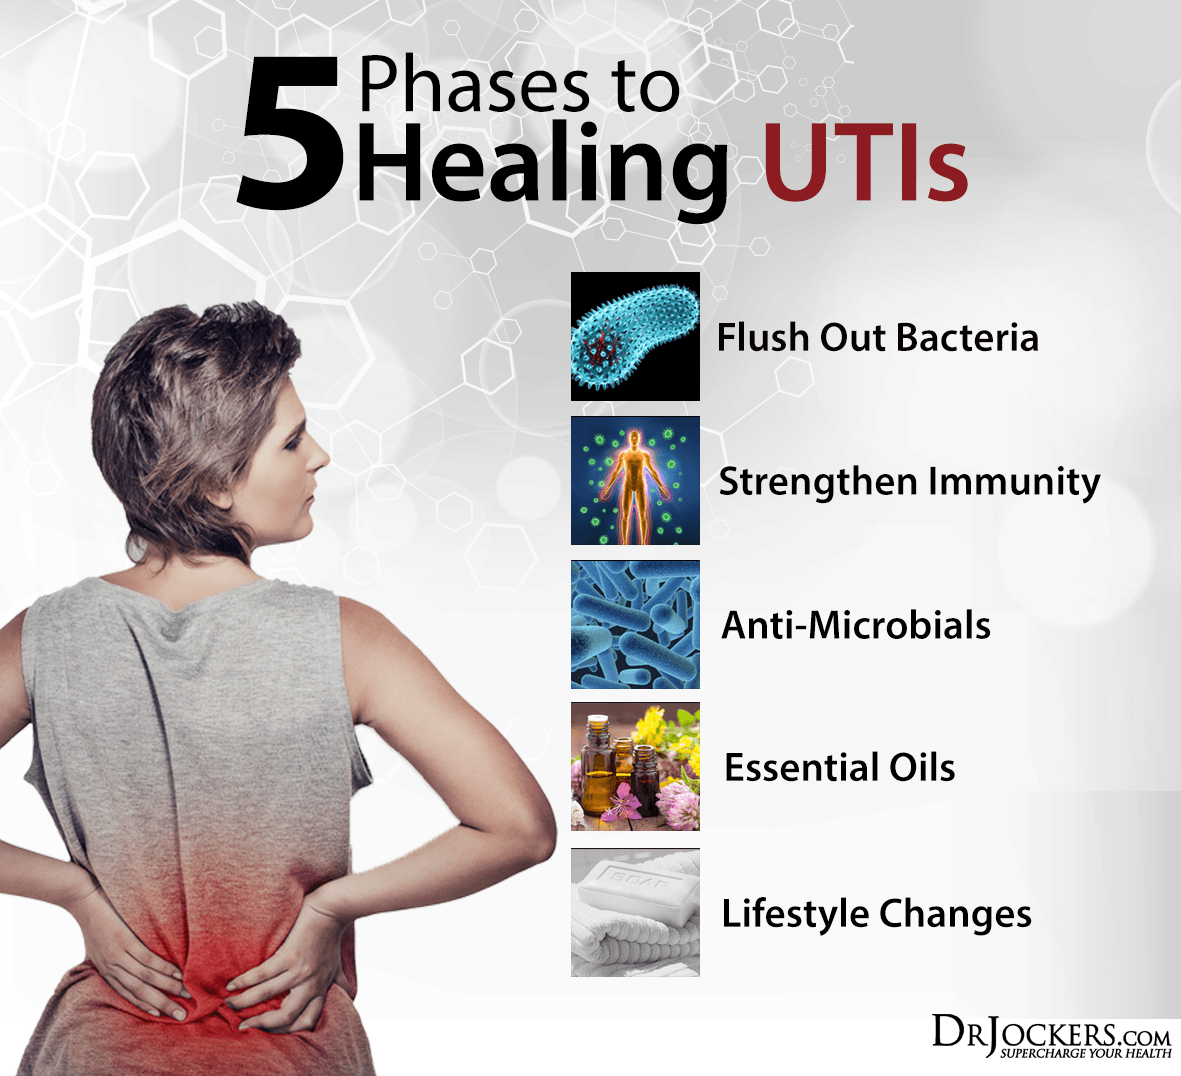 5 Phases To Heal Utis Naturally Drjockers Com